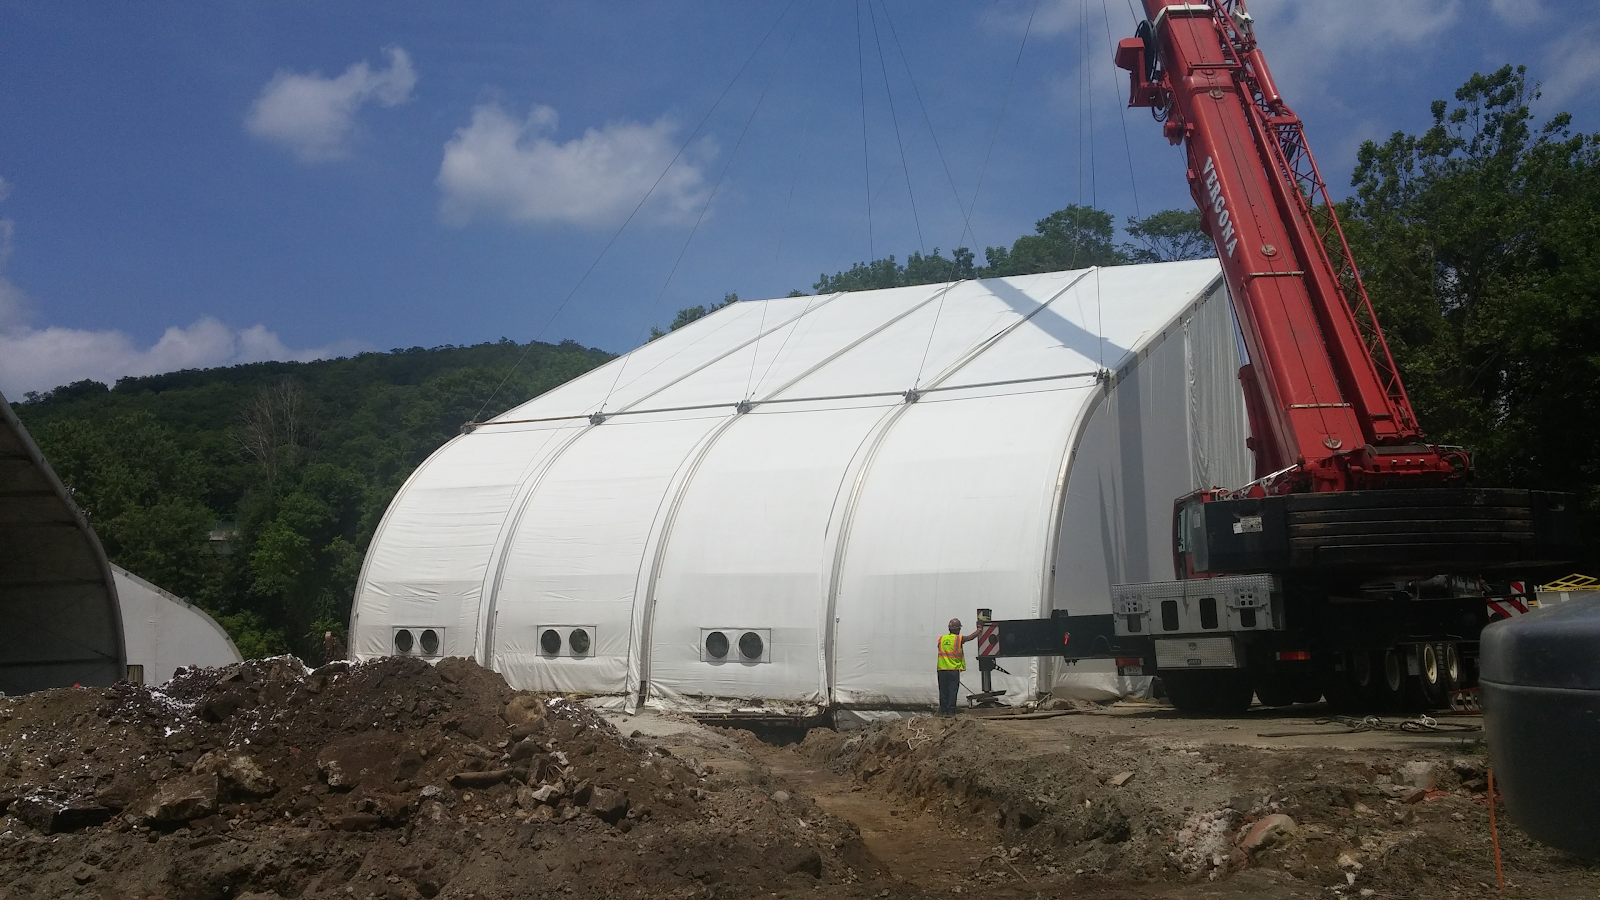 portable tension fabric structure at mining site